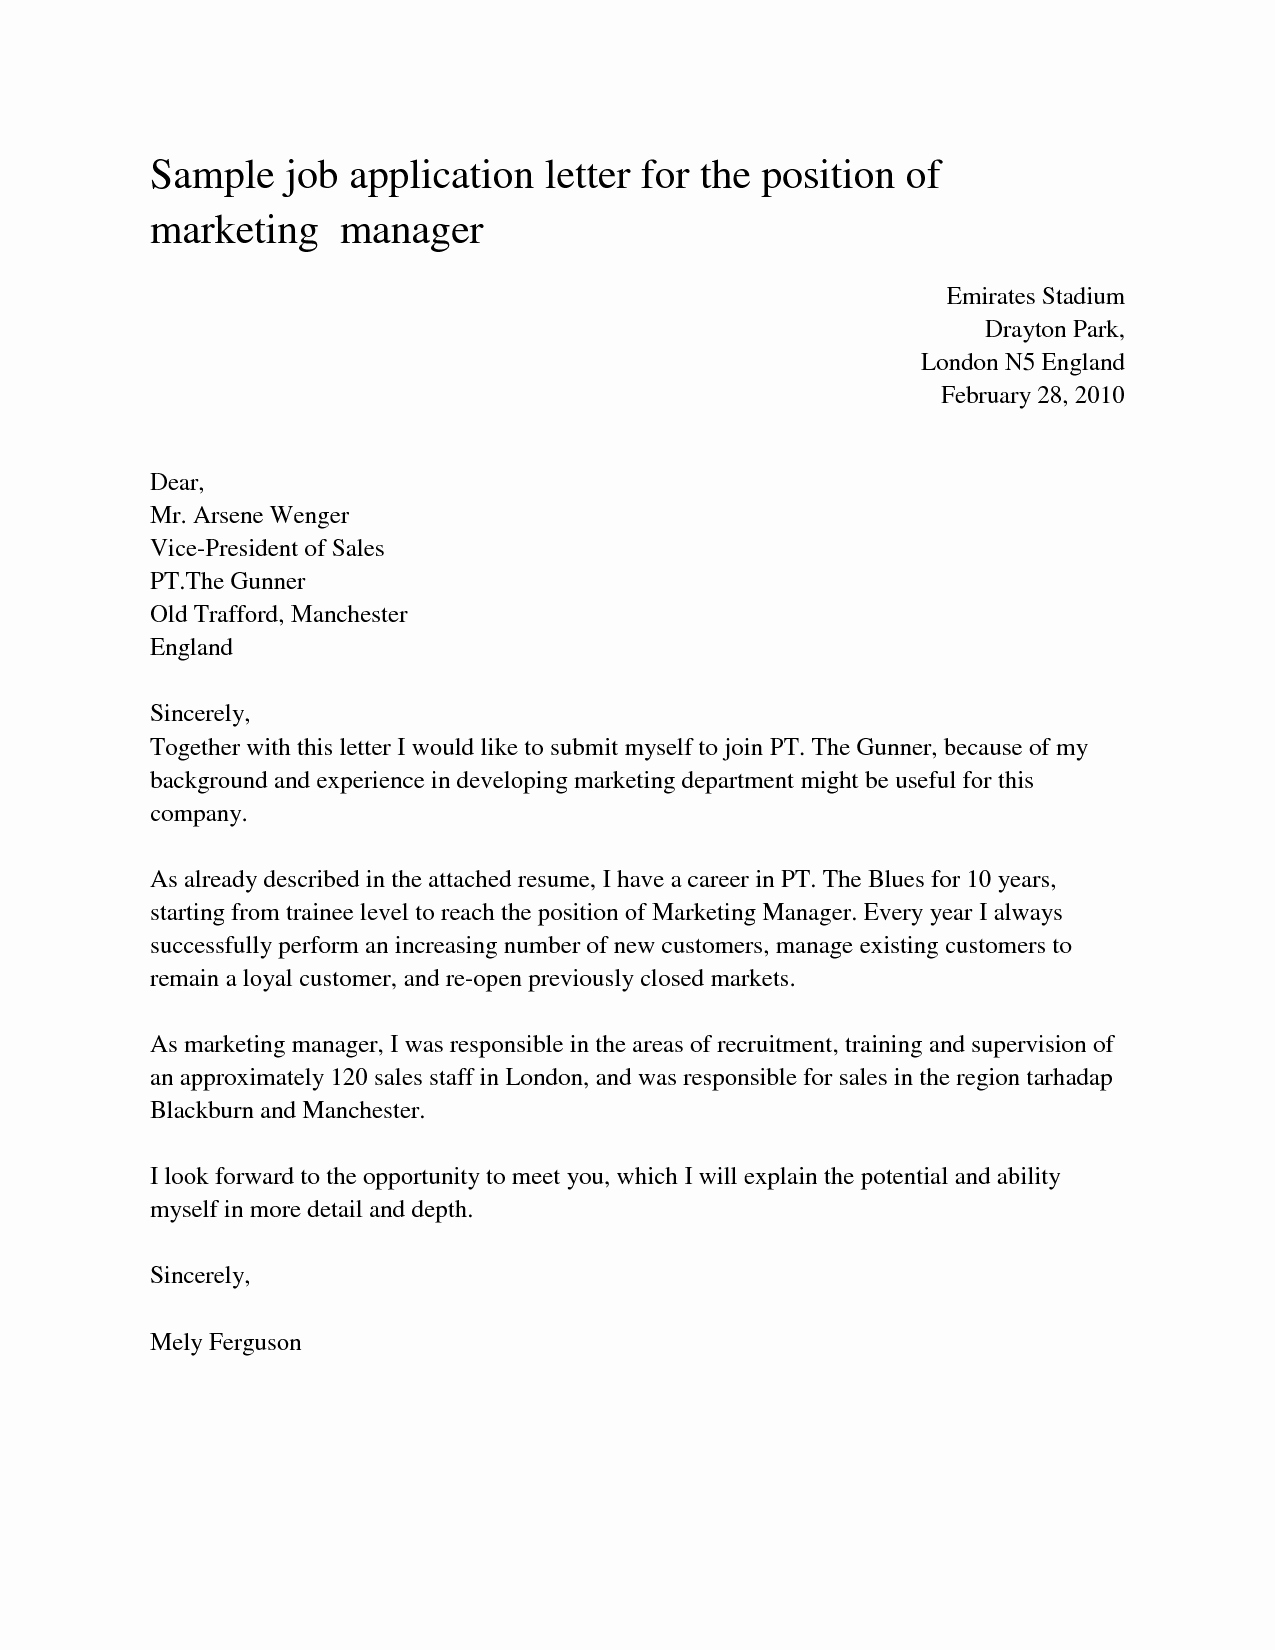 Letter Of Application Template Unique Download Free Application Letters